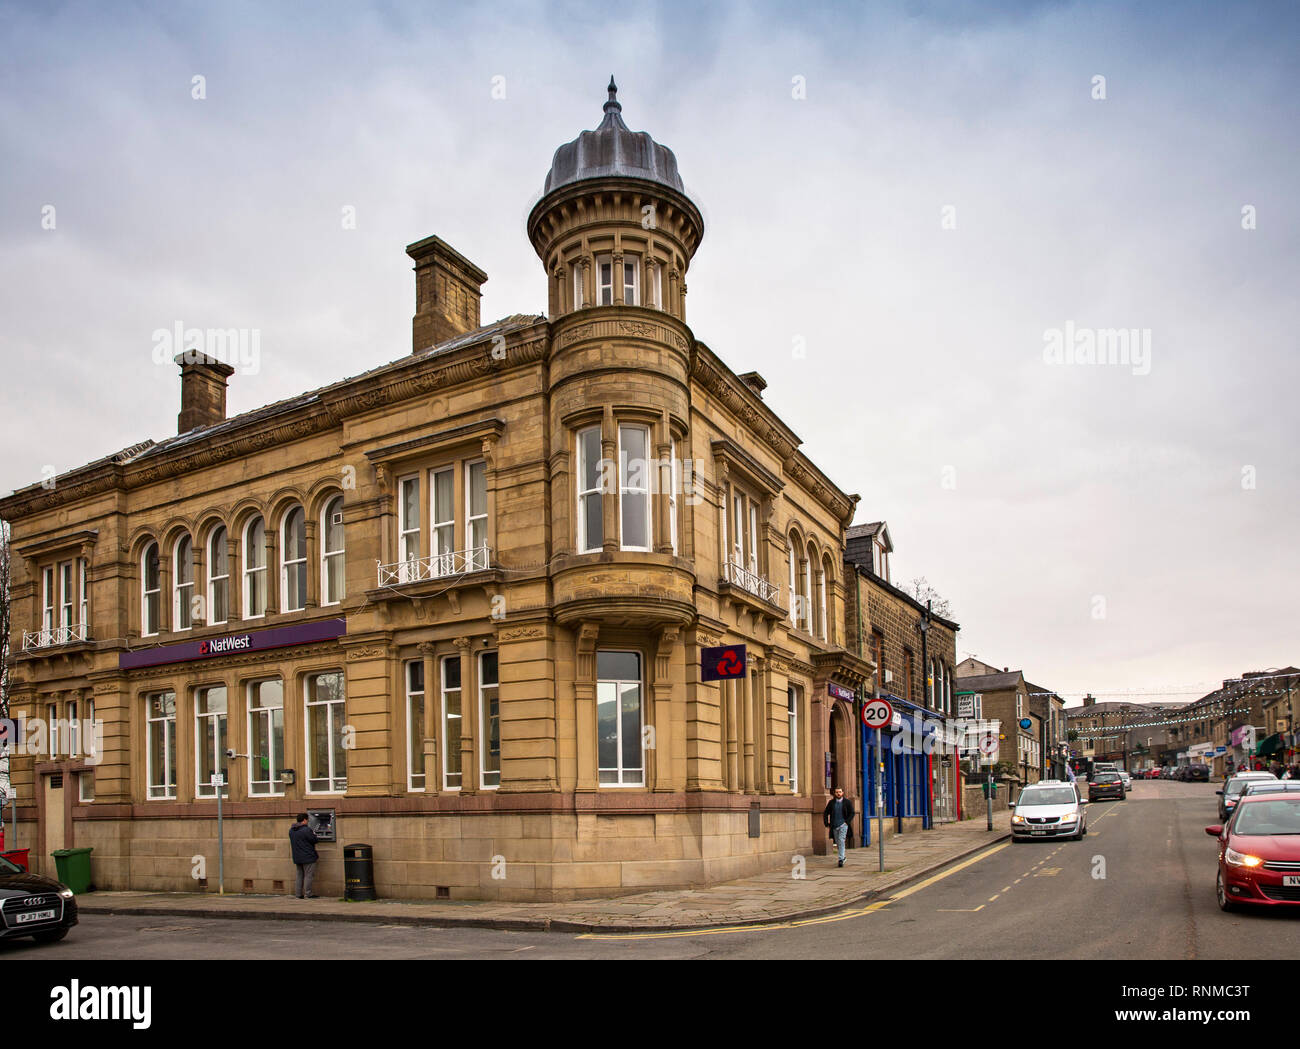 UK, England, Lancashire, Rawtenstall, Bank Street, NatWest Bank and main shopping area - Stock Image